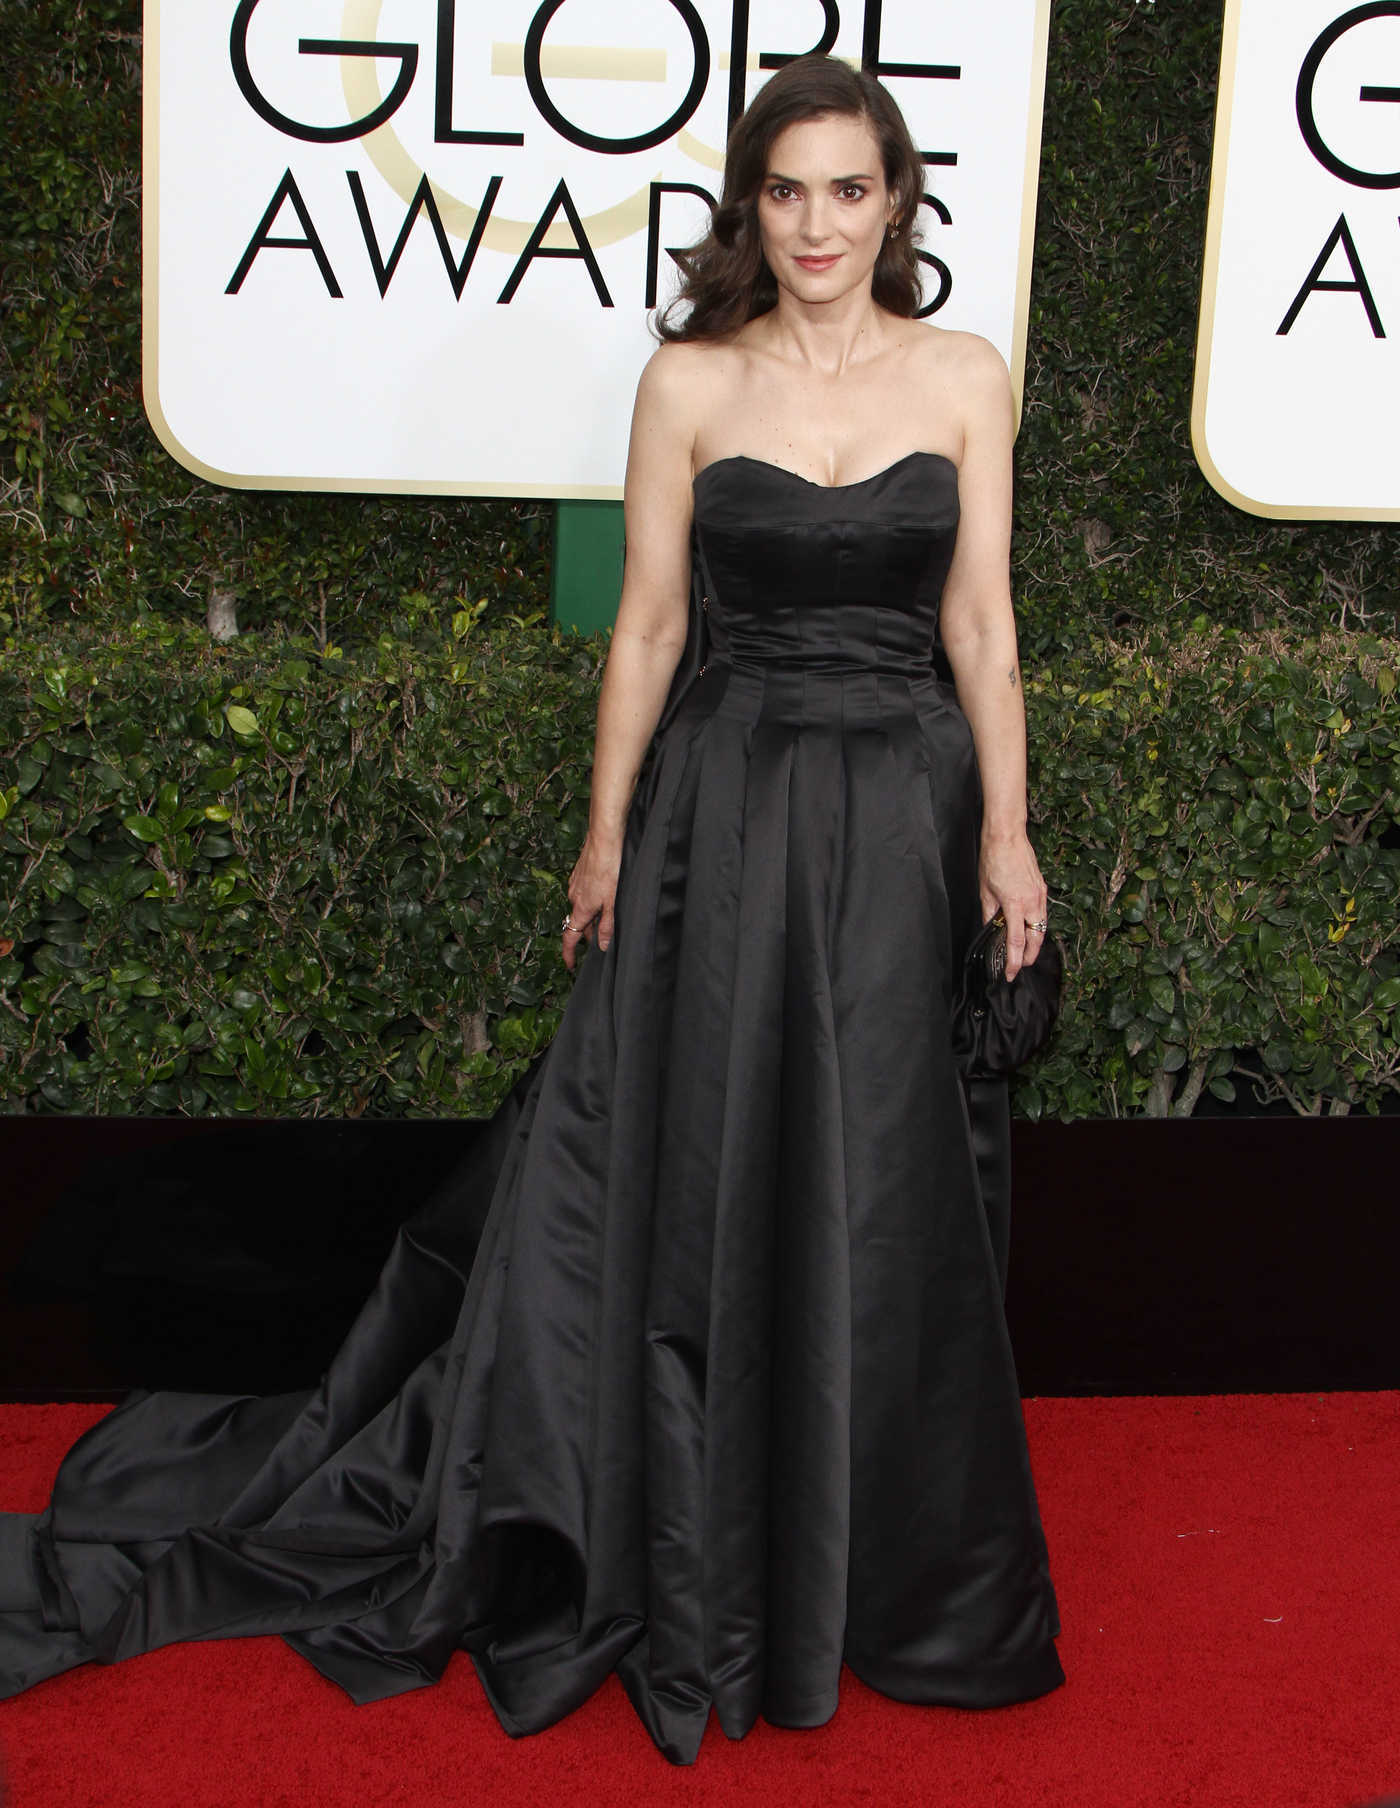 Winona Ryder at the 74th Annual Golden Globe Awards in Beverly Hills 01/08/2017